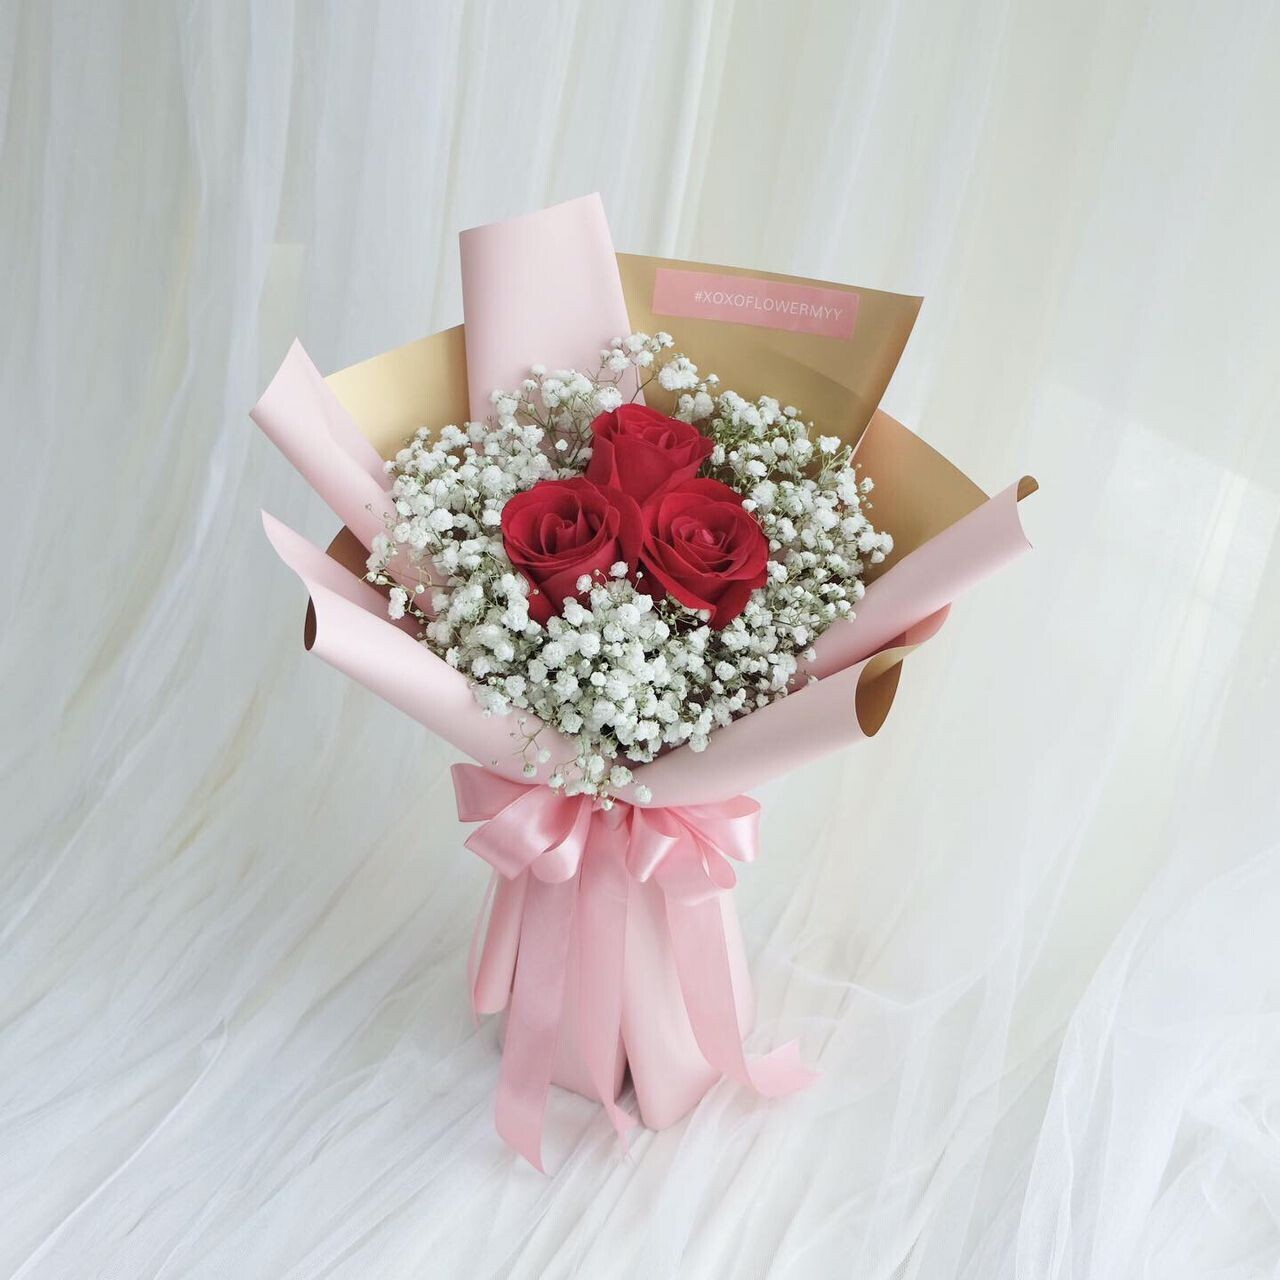 Jetaime (By: XOXO The Floral Studio from Miri)